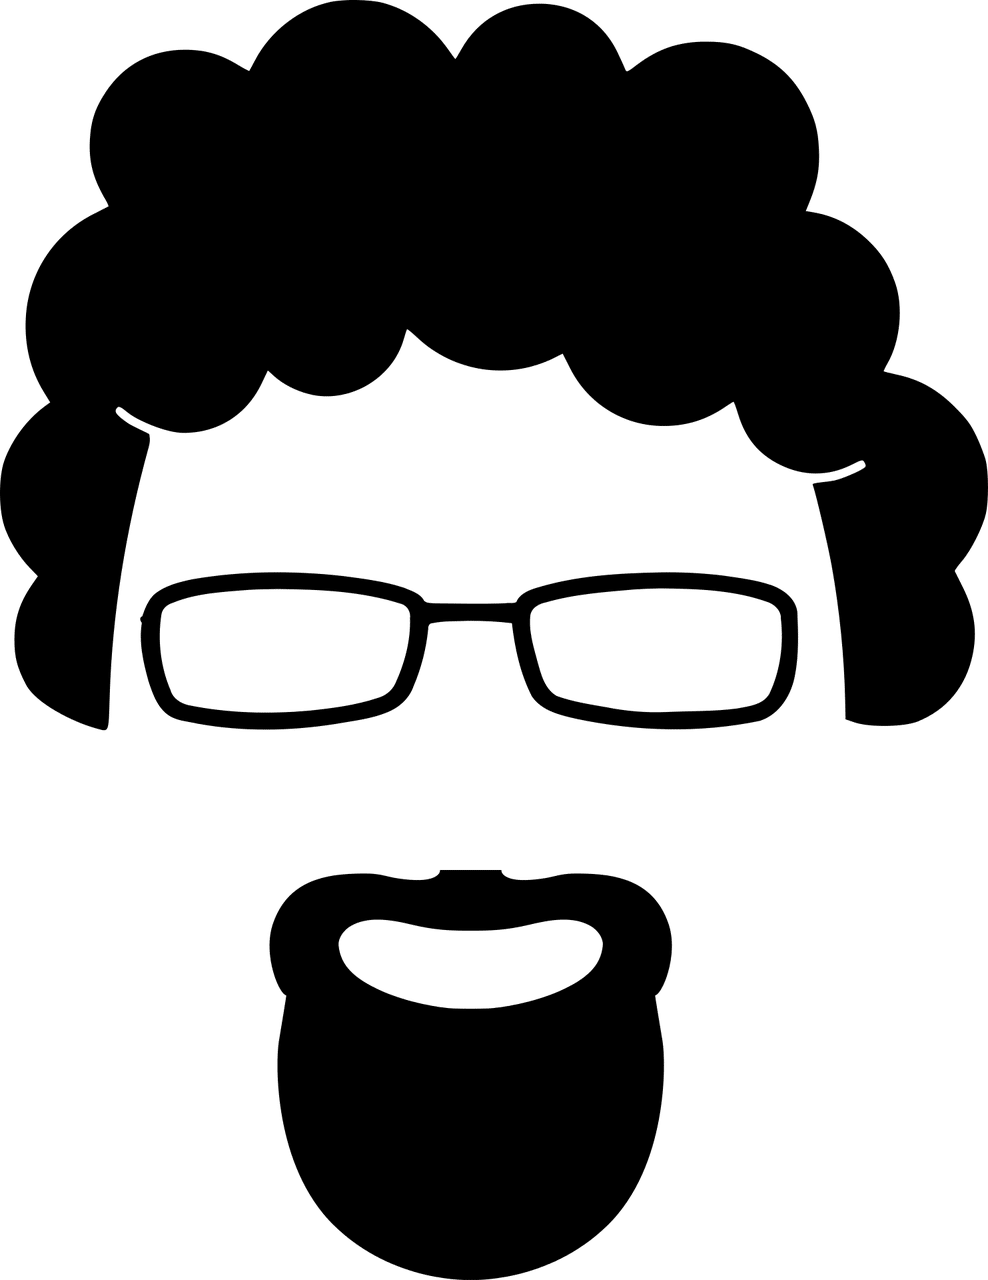 Goatee drawing full beard. Care and maintenance the